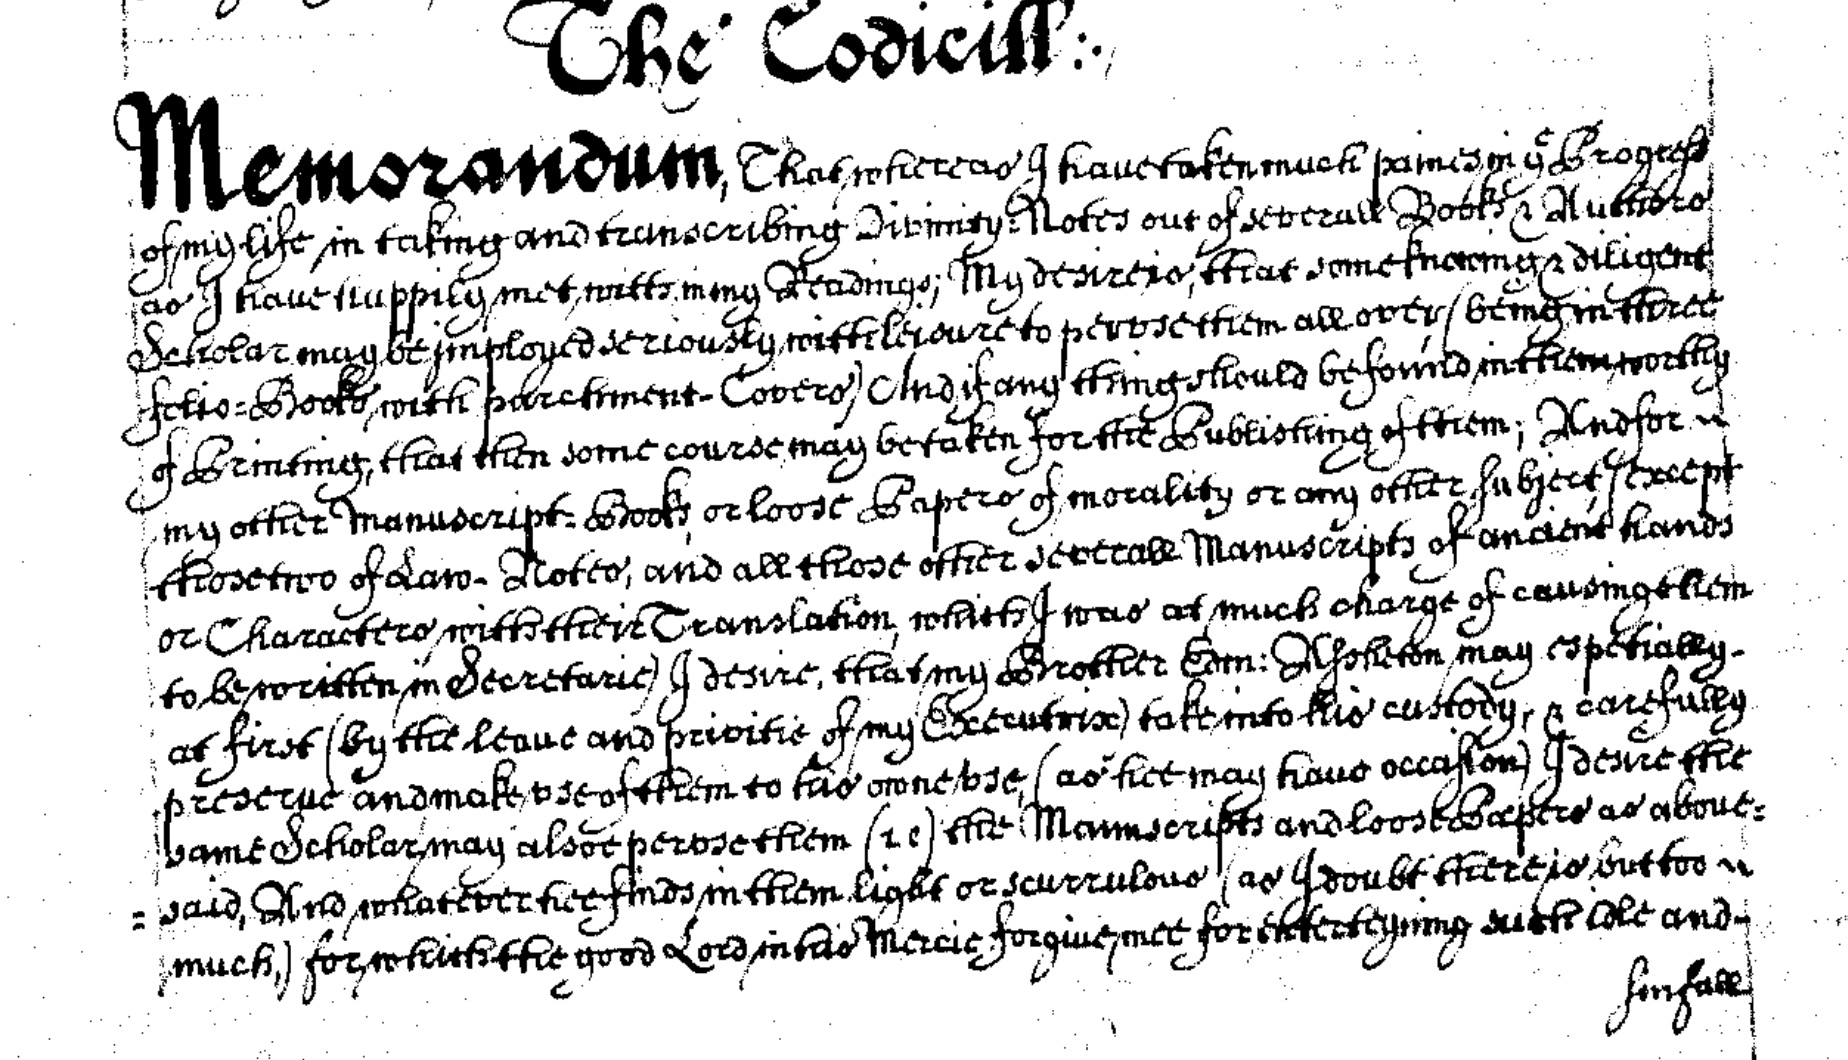 Codicil to Sir Raphe Assheton's will. TNA: PROB 11/362/546. Reproduced with permission from The National Archives.